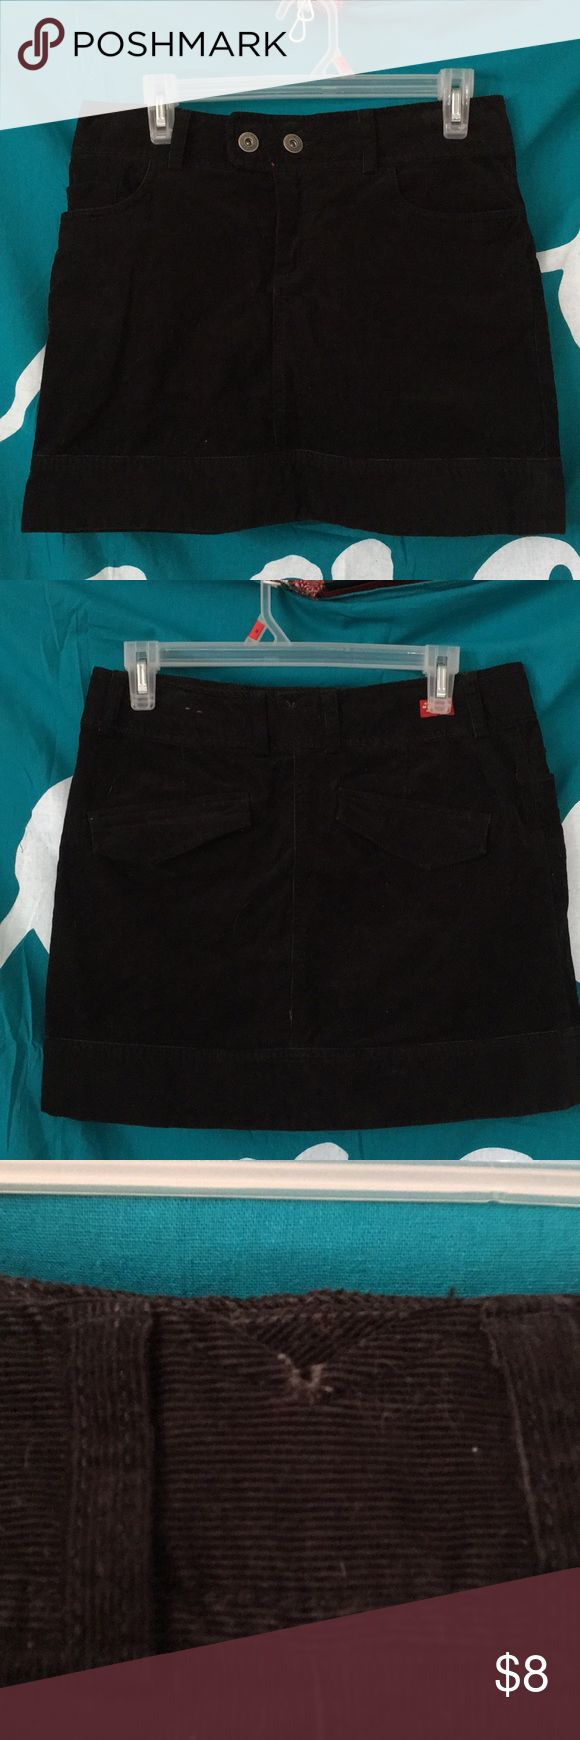 Eastern Mountain Sports Black corduroy miniskirt Adorable black corduroy mini skirt from Eastern Mountain sports. Two buttons in the front, a notch VE at the back with slight signs of wear. Pic shows the area in detail. Generous sizing, fits slightly larger than the standard 4 in women's. eastern mountain sports Skirts Mini